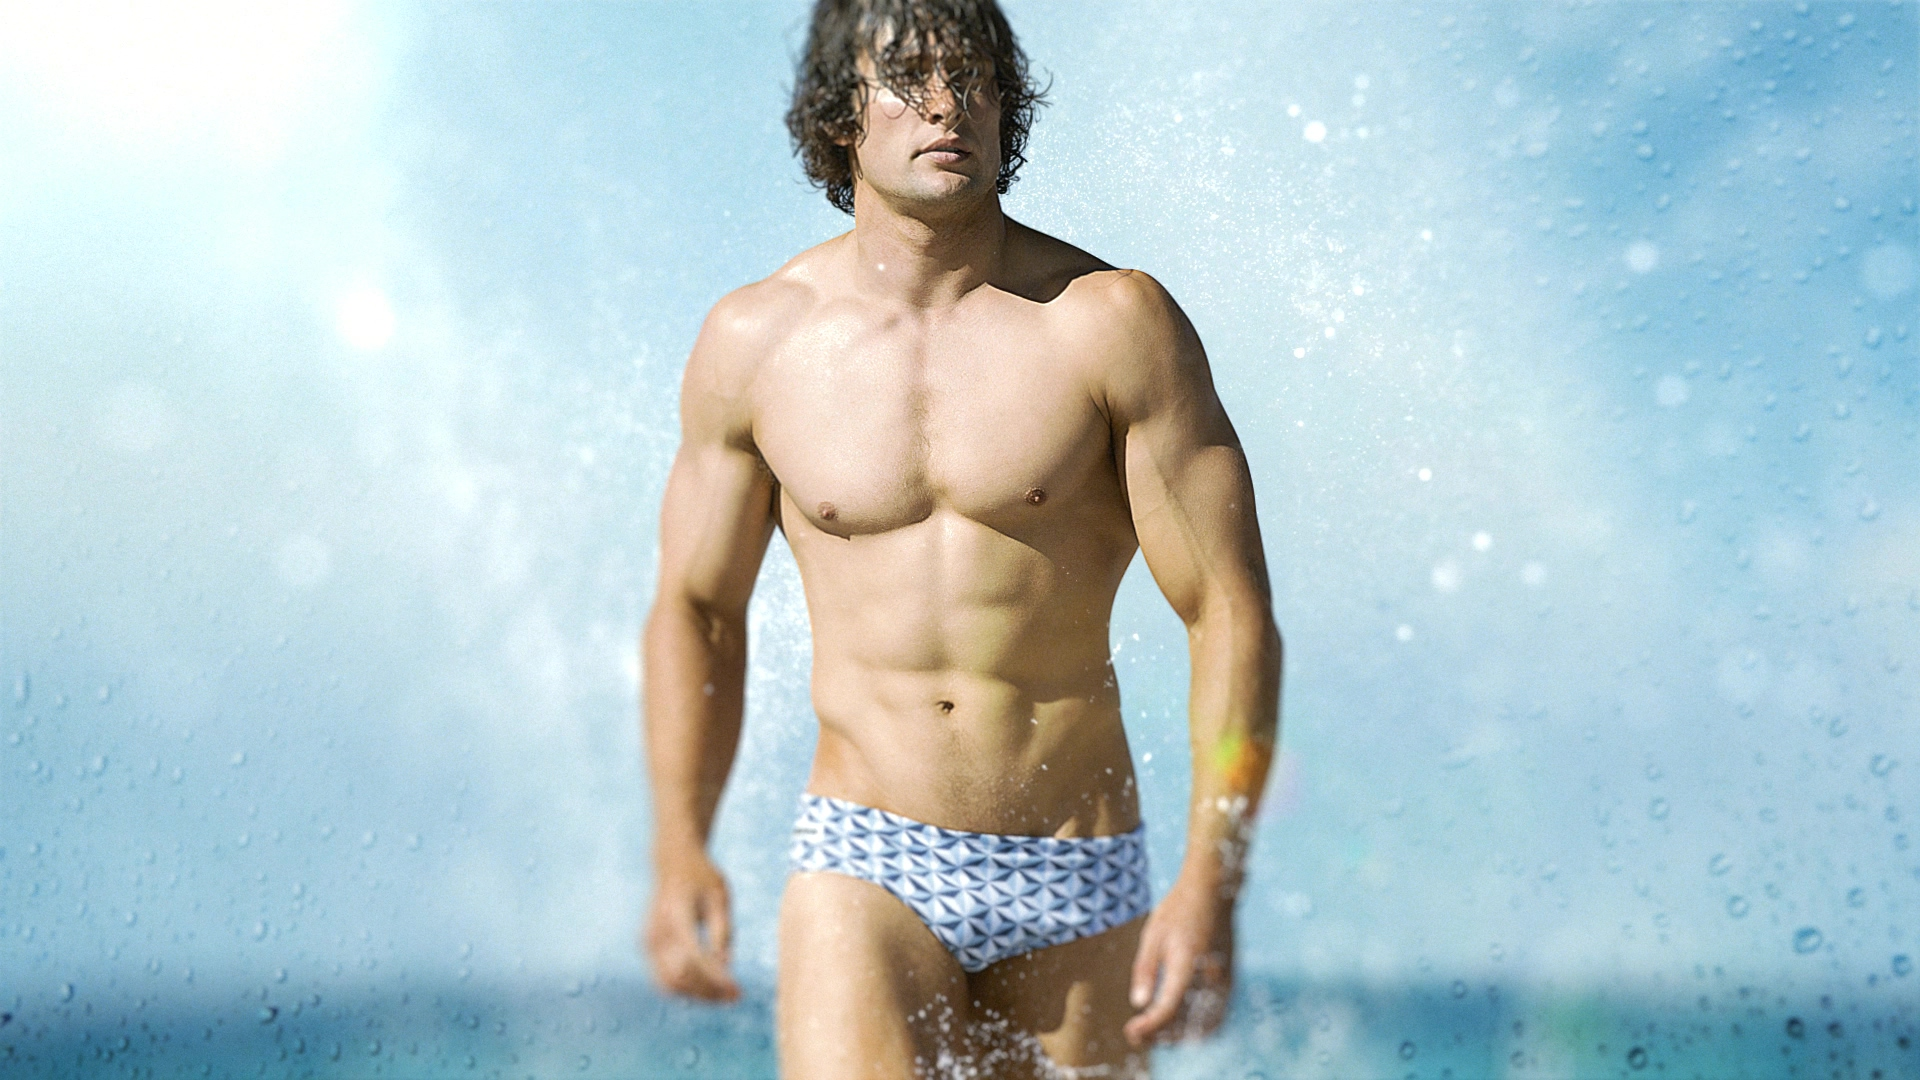 Introducing the new benchmark in men's swimwear globally; LUXE. In conjunction with France's leading boutique fabric knitting company, aussieBum's new LUXE collection is a game-changer in quality, design and style. Made in Australia by our talented craftspeople, LUXE brings sophistication and elevates your personal style for any summer holiday event. Strictly limited edition, with only 150 garments ever to be made per style. Expect the very best and we guarantee you will not be disappointed. Proudly Australian made.